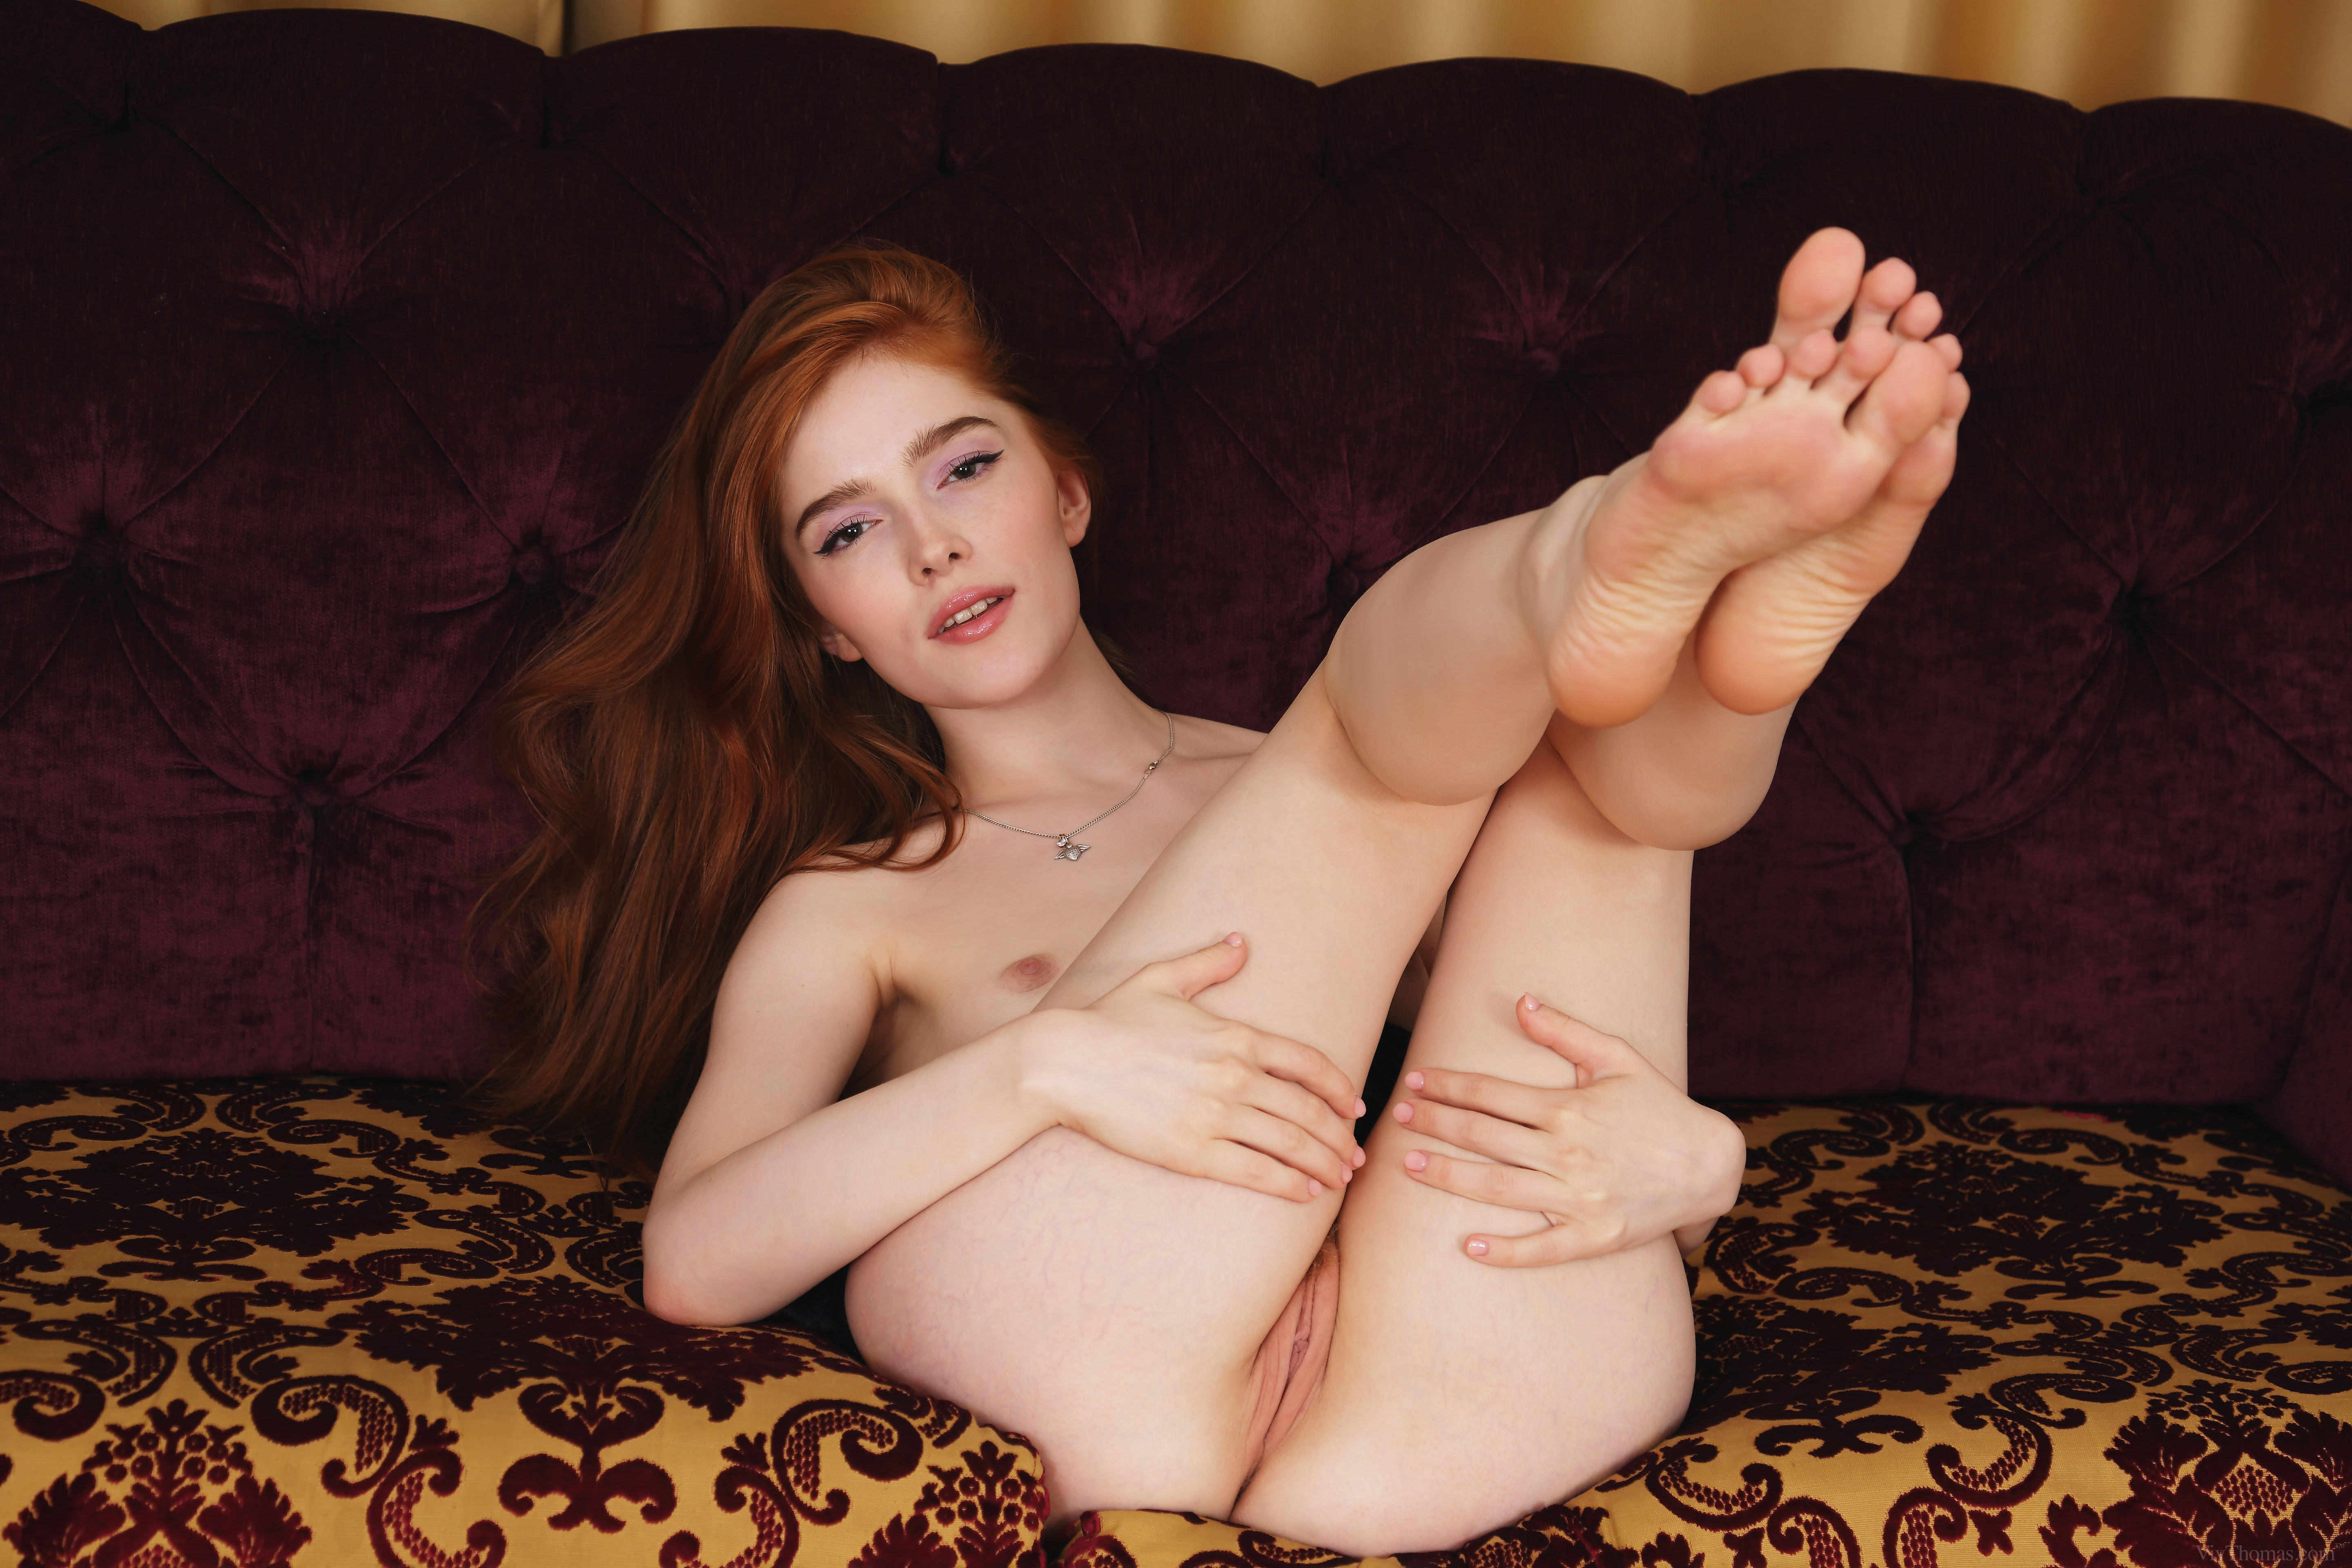 nude-girls-with-legs-up-photo-mix-vol3-29